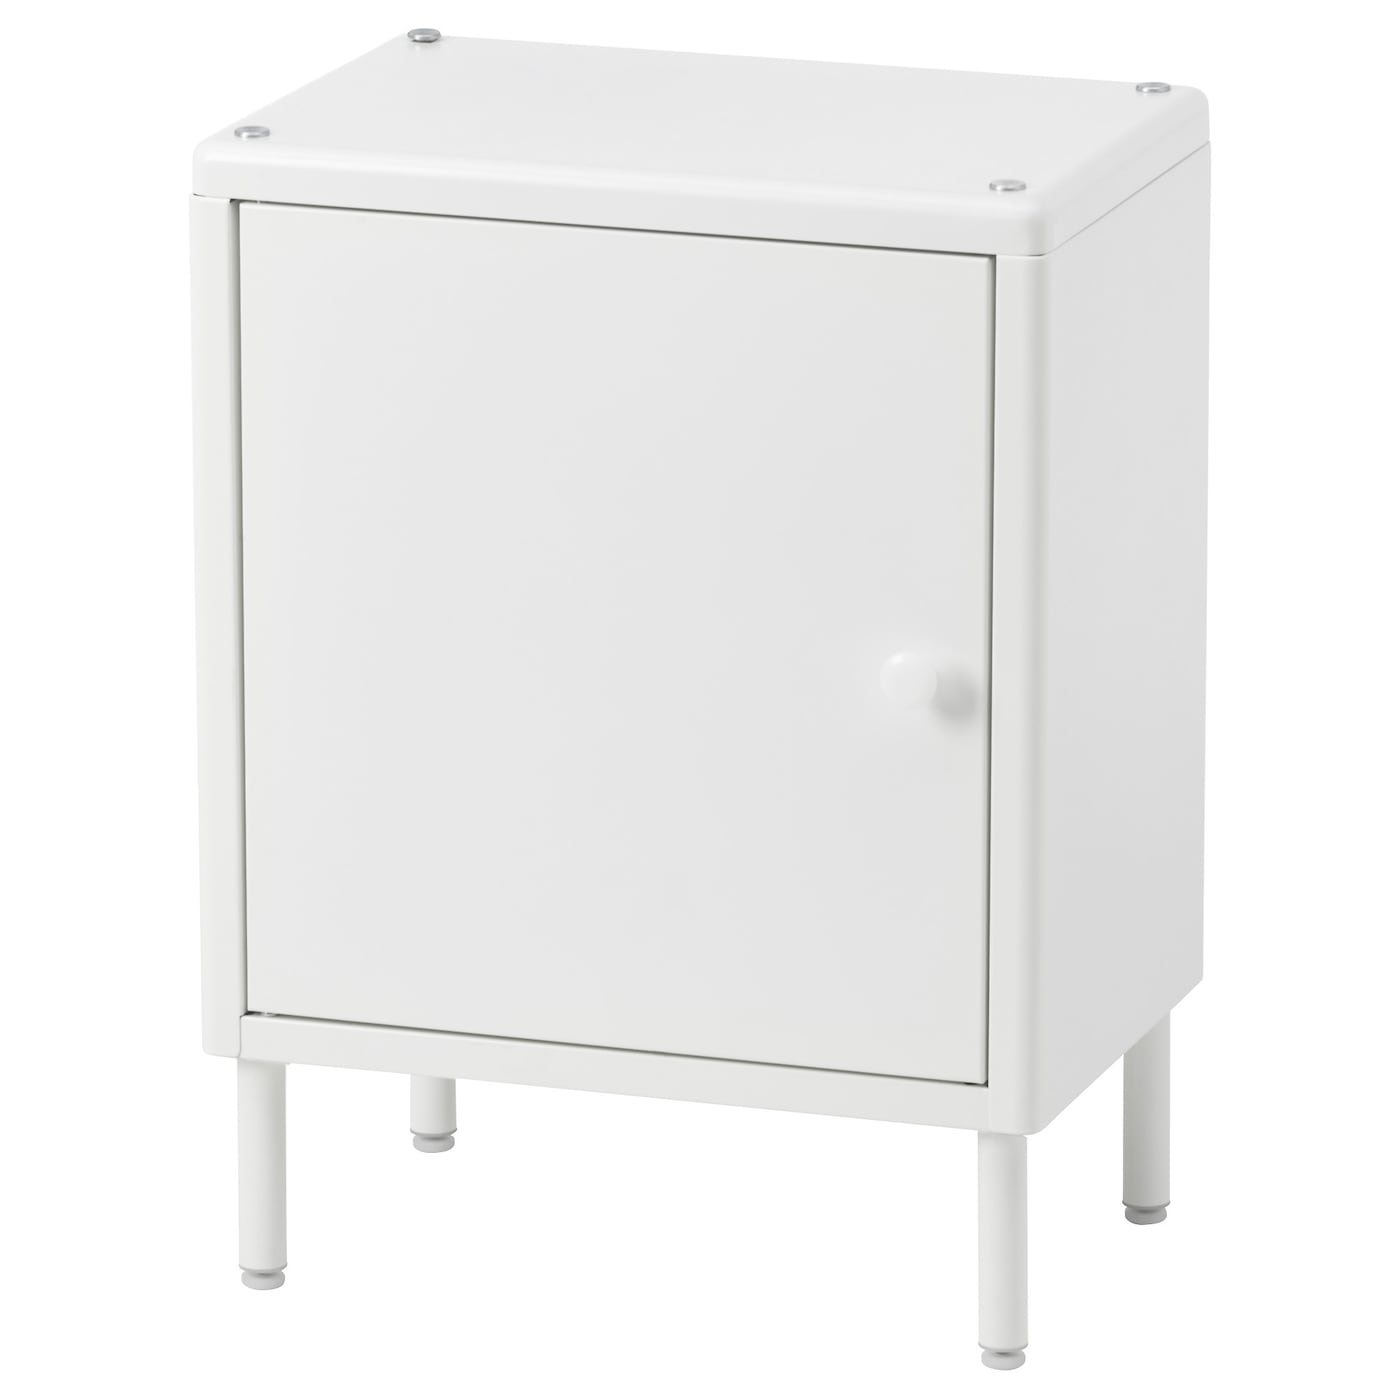 IKEA DYNAN cabinet with door Perfect in a small bathroom.